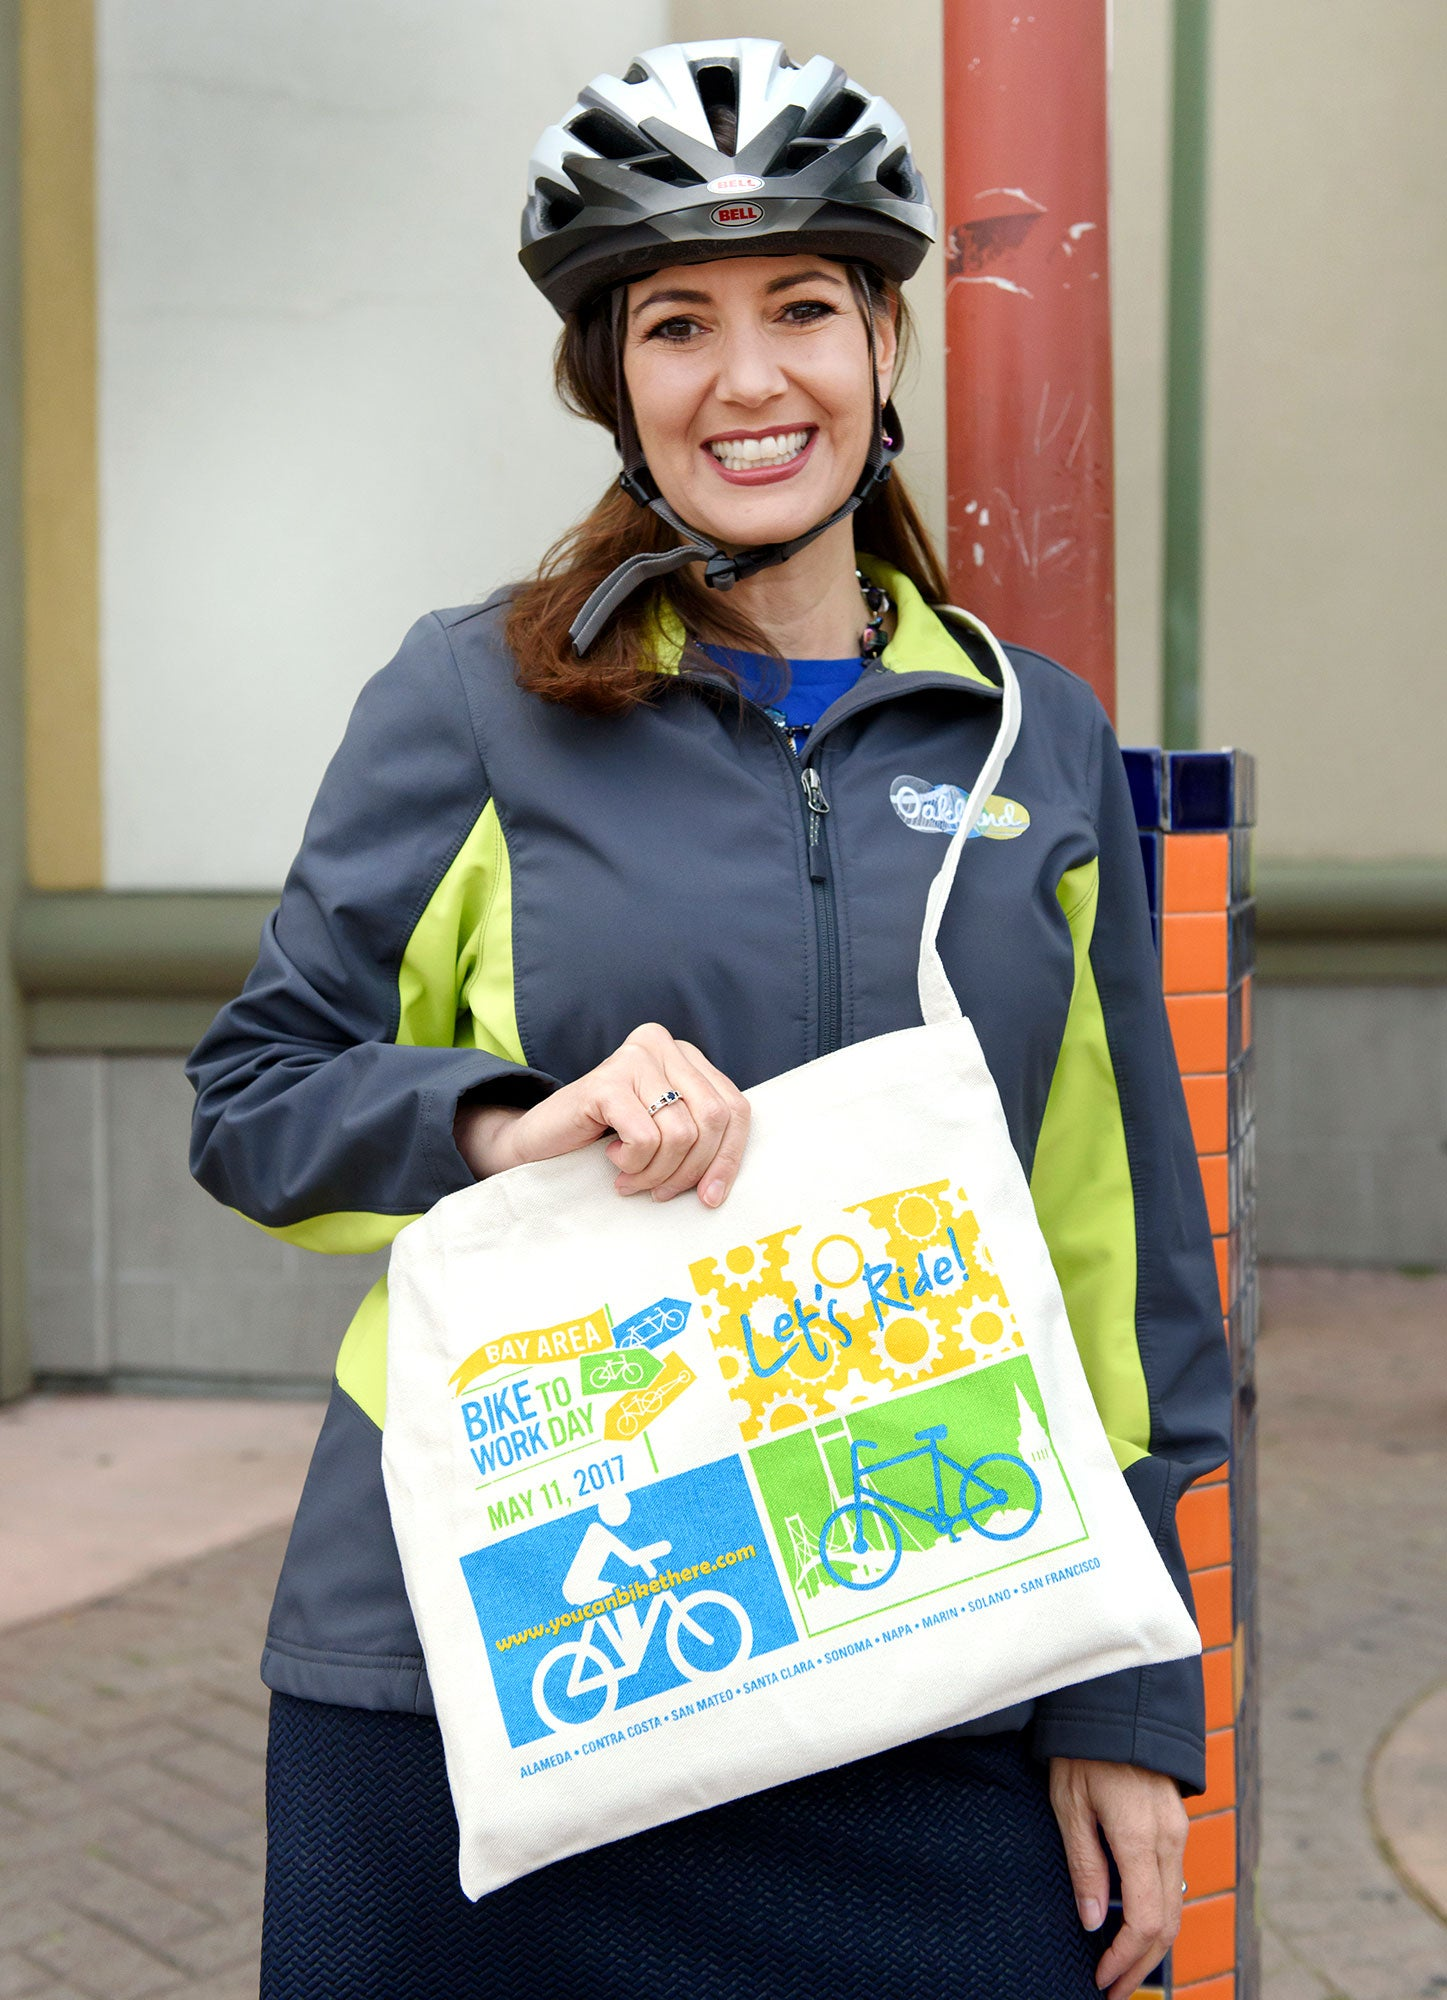 MTC Commissioner and Oakland Mayor Libby Schaaf flashes a Bike to Work Day smile at the Fruitvale BART station